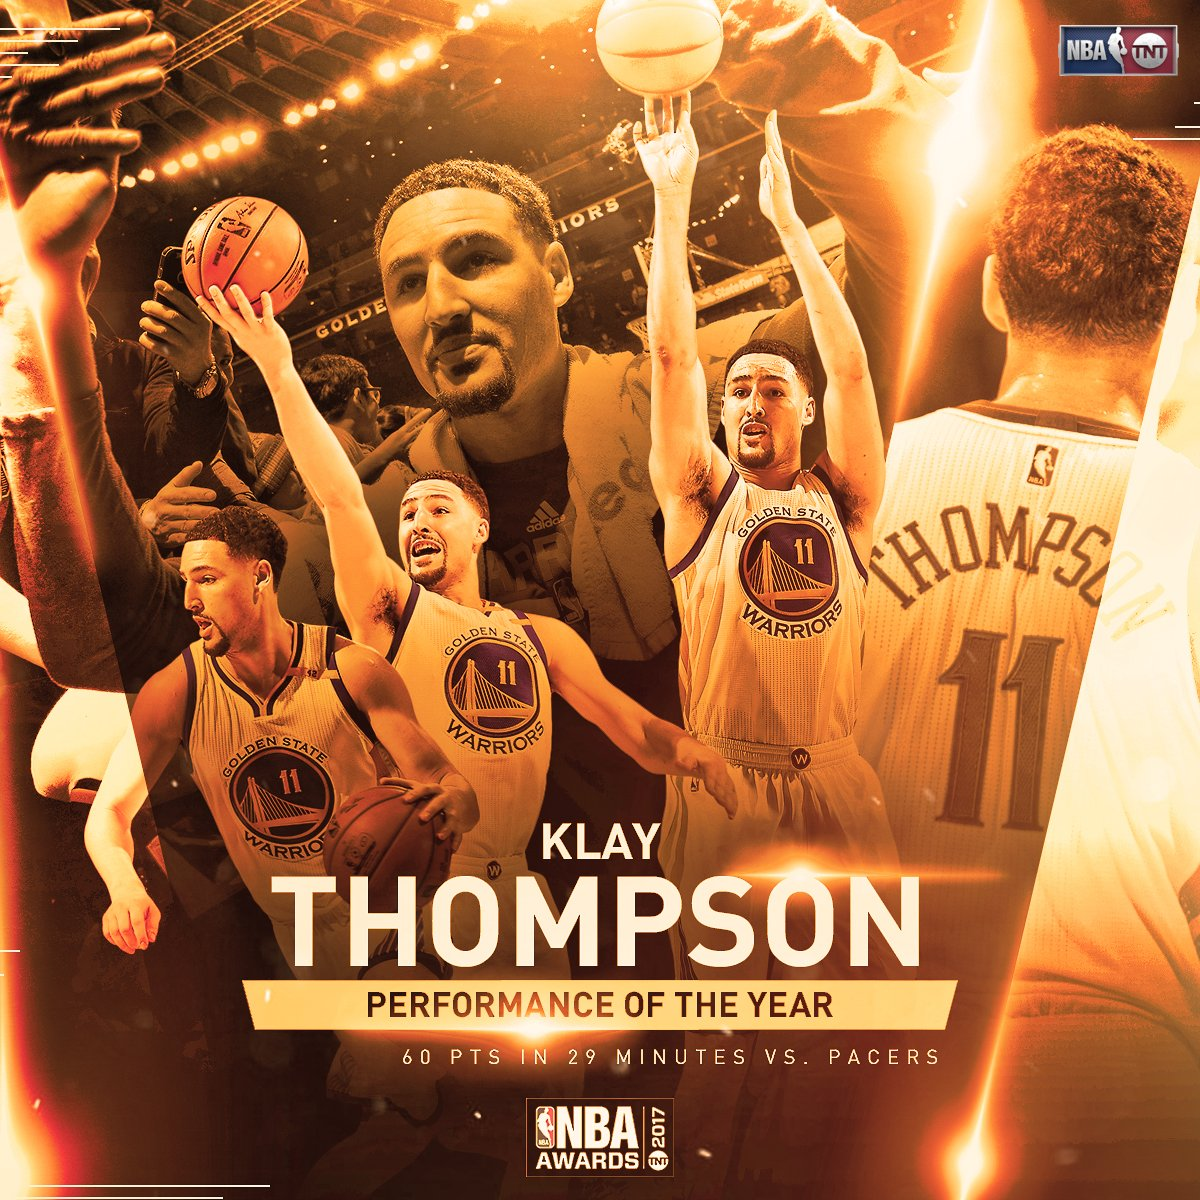 Klay Thompson wins the fan vote for Performance of the Year! #NBAAward...